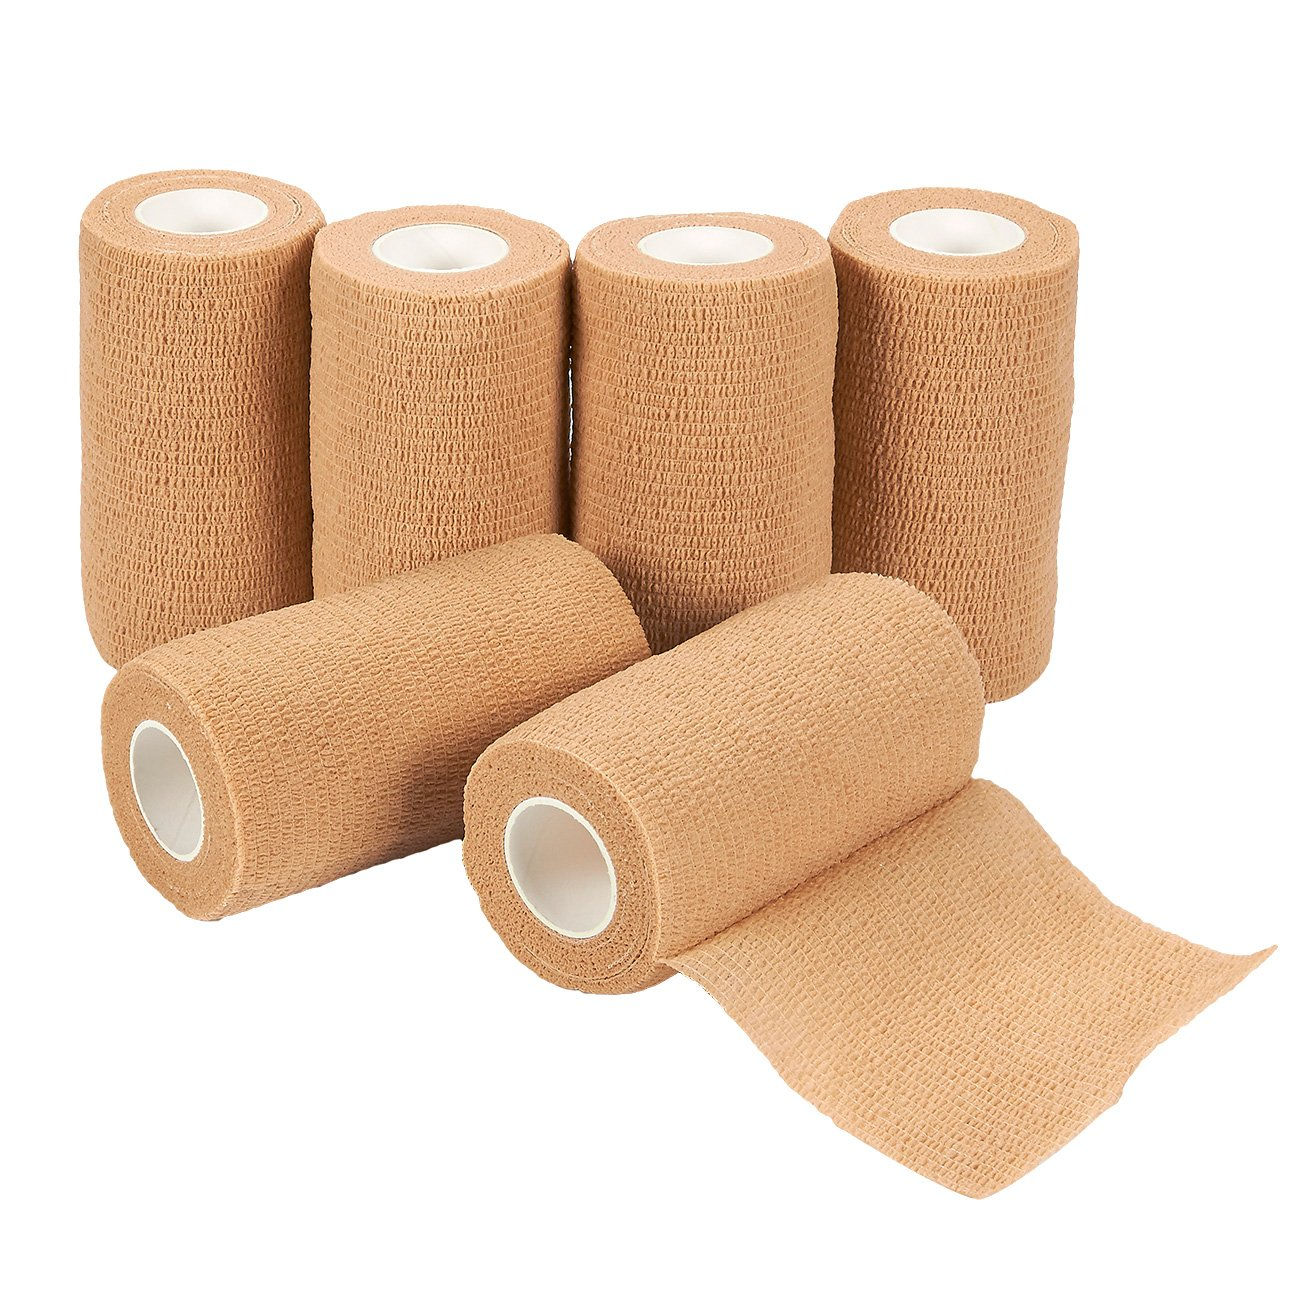 Self Adherent Wrap - 6 Pack of Cohesive Bandage Medical Vet Tape in Tan for First Aid, Sports, Wrist, Ankle, 4 Inches x 5 Yards by Juvale